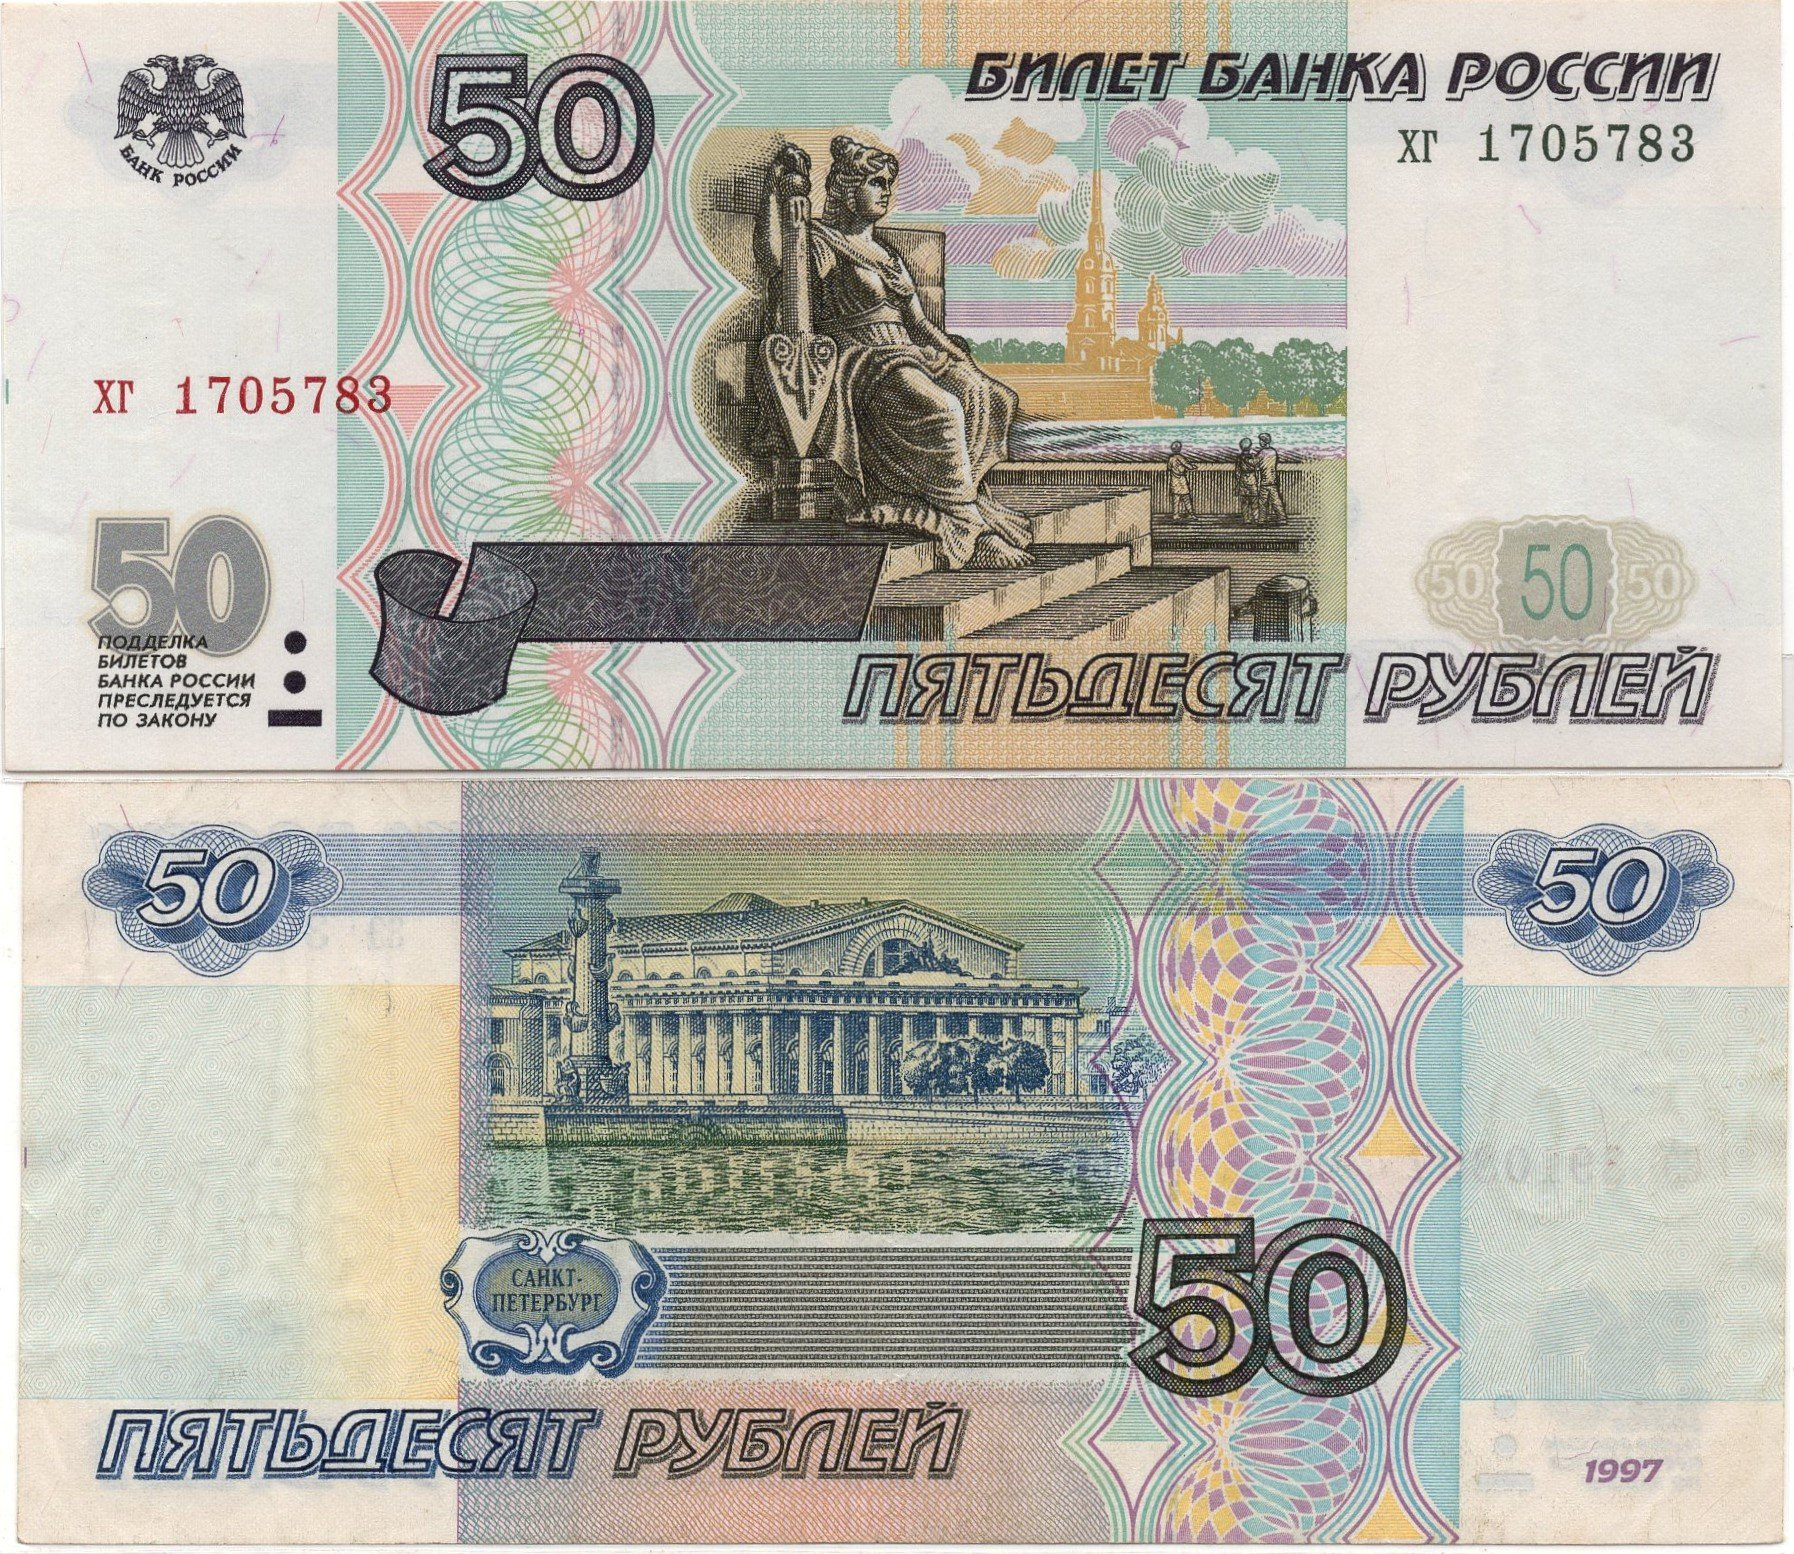 Russia 50 roubles 1997 banknote for sale